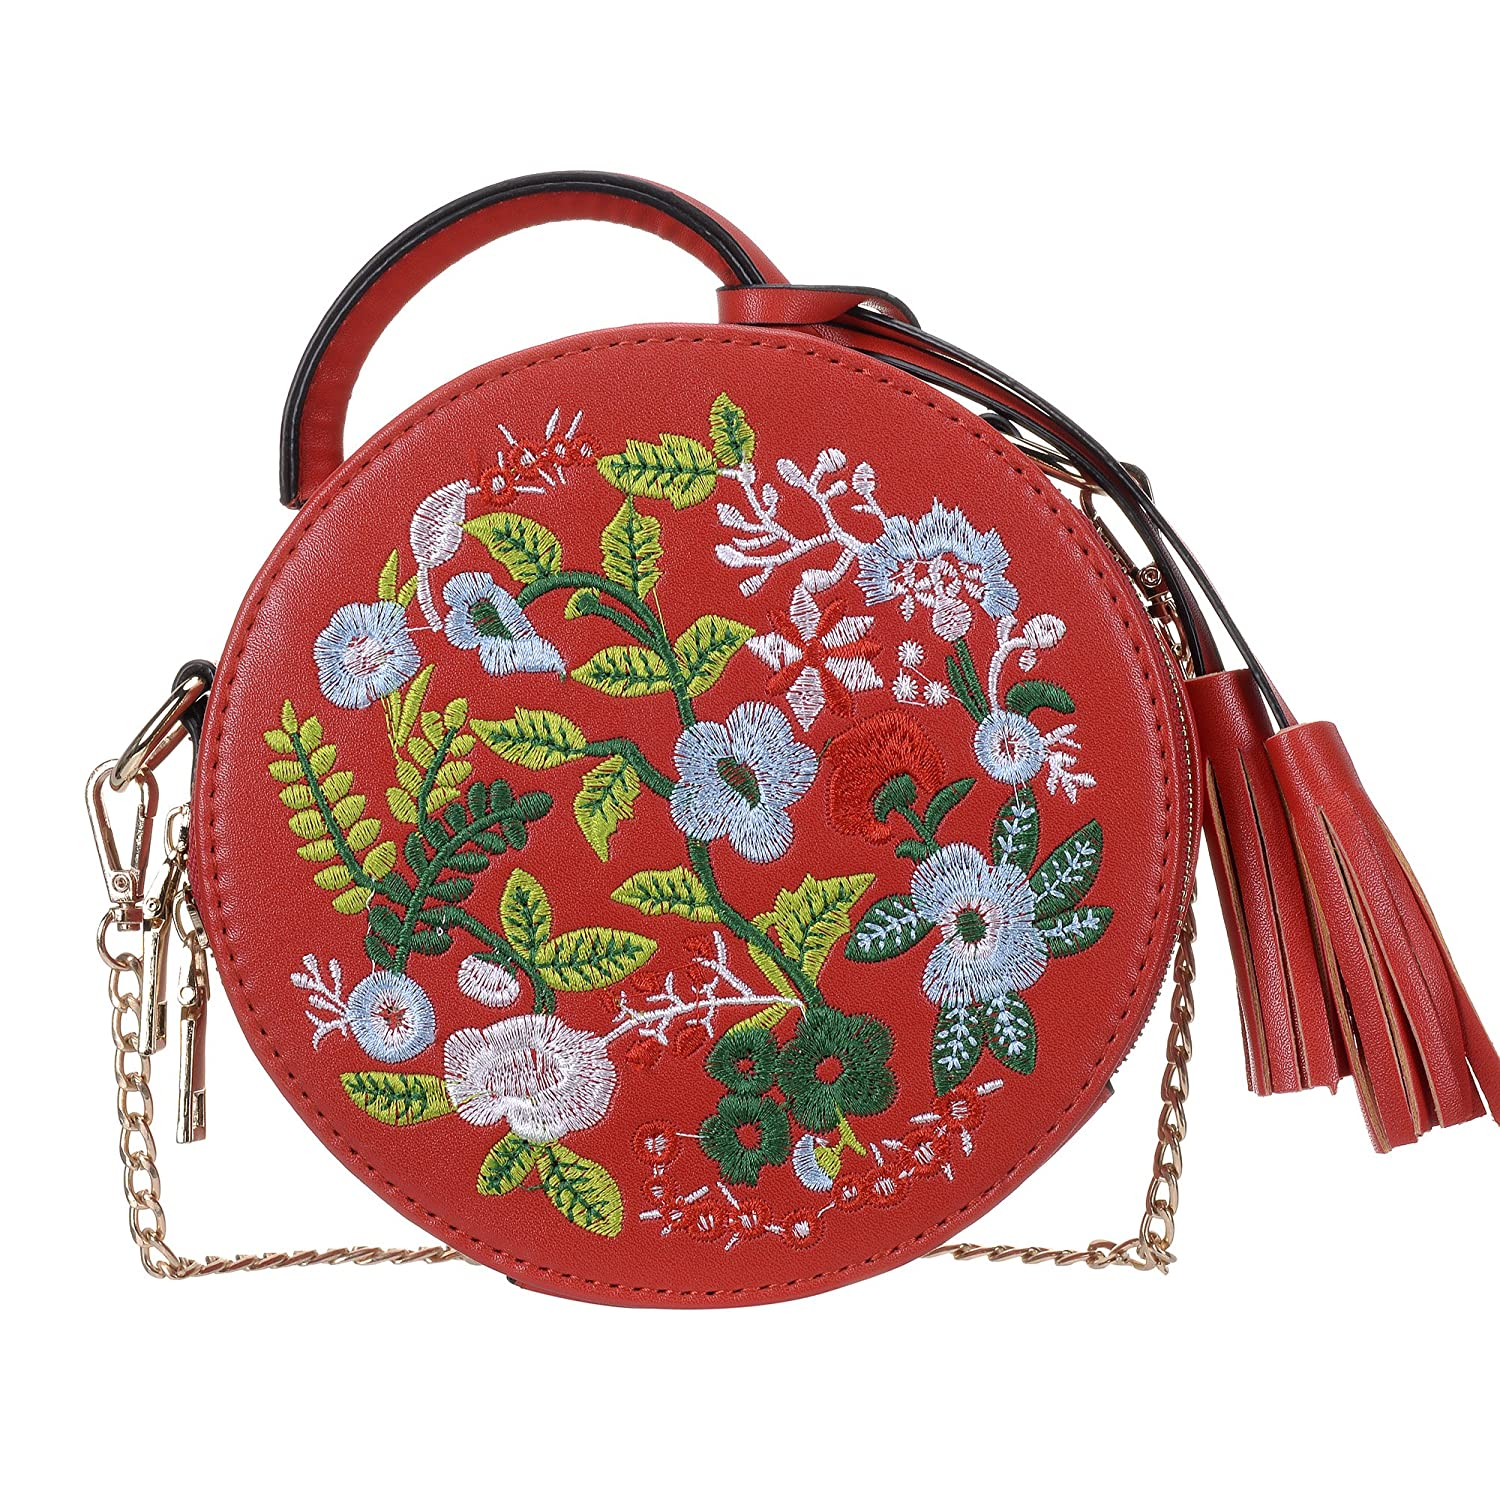 Women's Ethnic Style Embroidered Round Crossbody Shoulder Bag Top Handle Tote Handbag Bag GBD-CZ-60178-heise